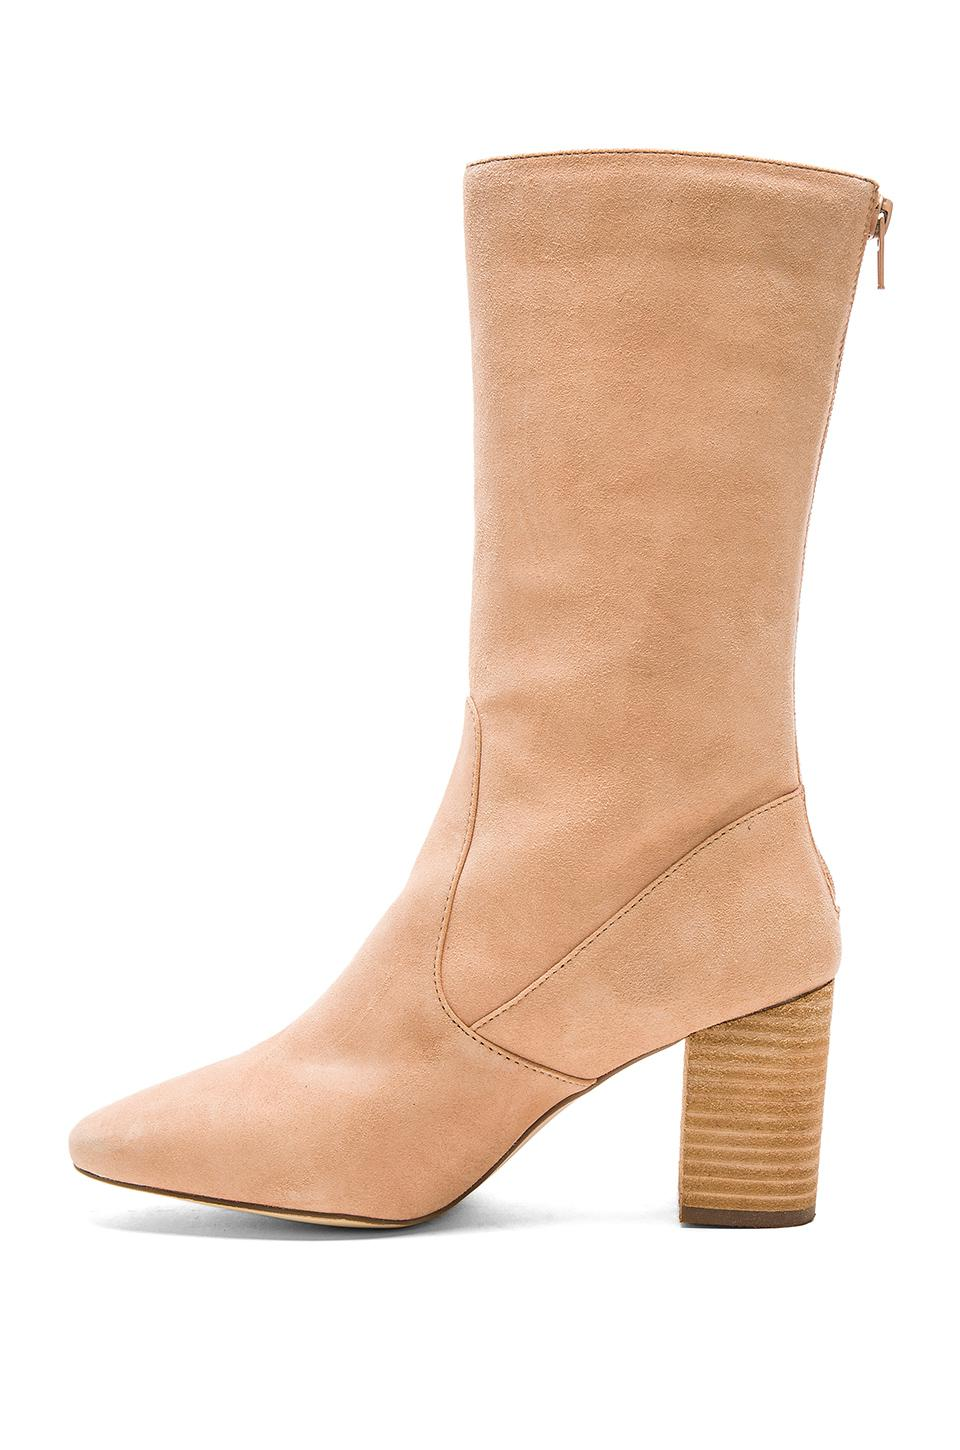 Matisse Suede Babe Boots in Natural